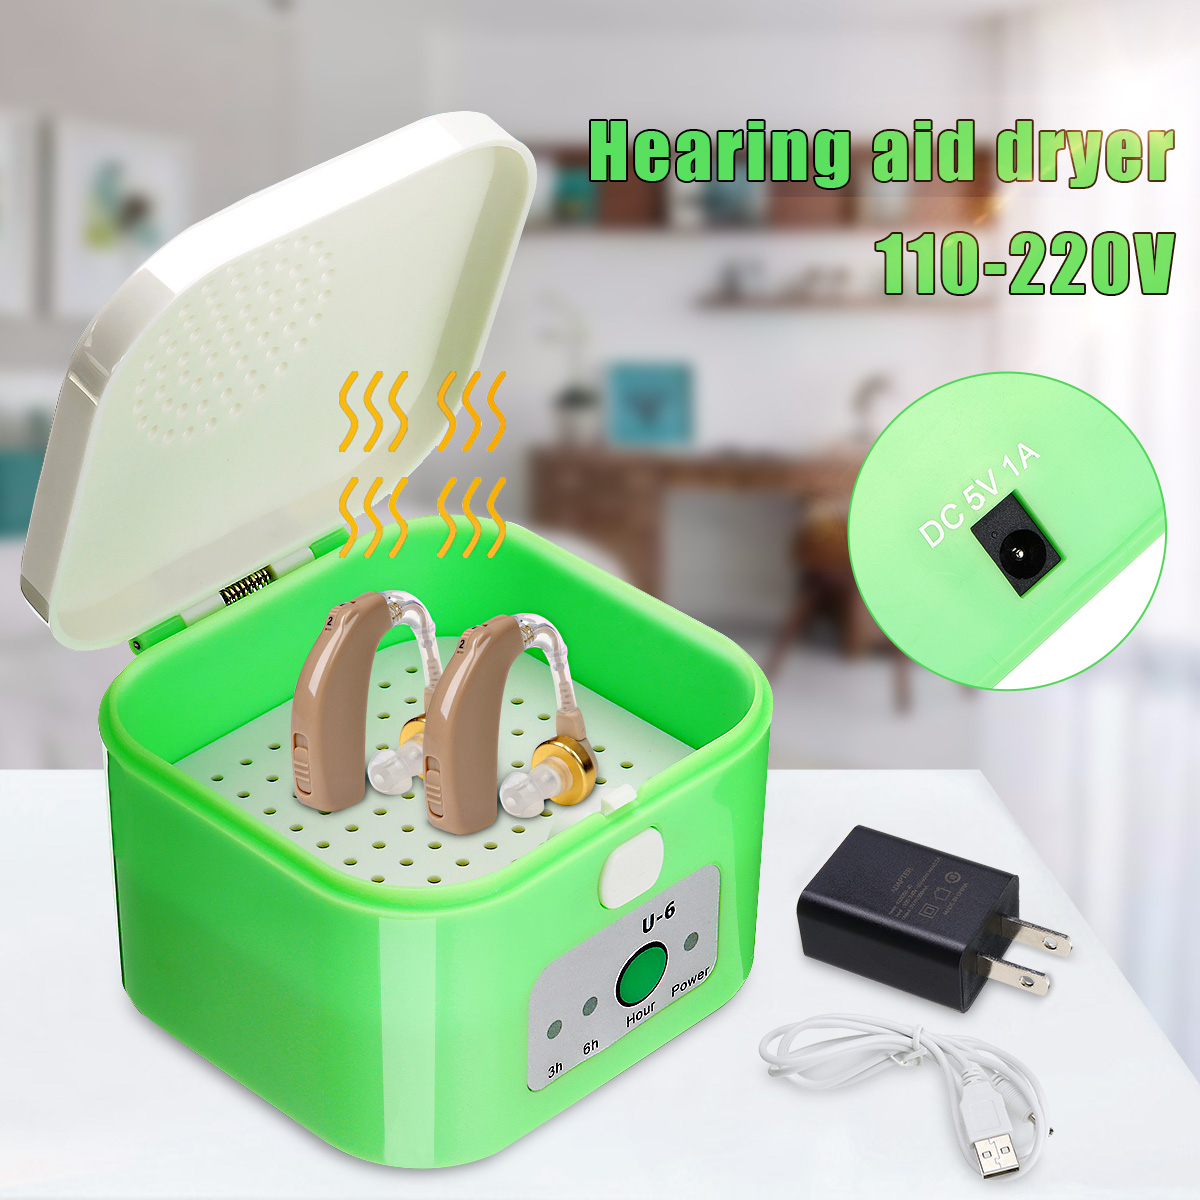 Digital Hearing Aid Dryer Electric Drying Box Dehumidifier 3-6 Hour Timer Moisture Proof Maintain Hearing Aid Dry Case